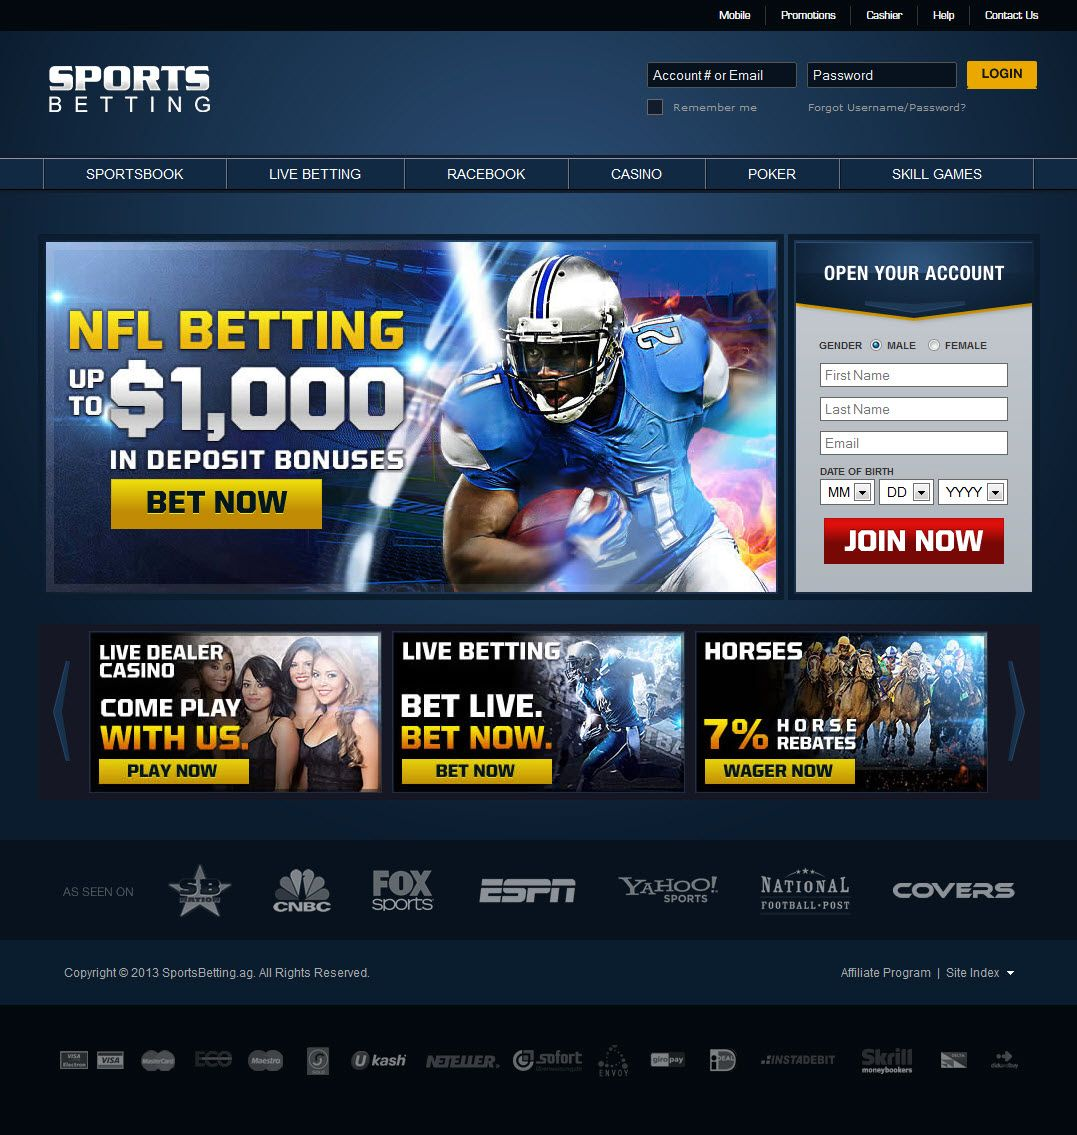 The homepage of sports betting site sportsbetting.ag